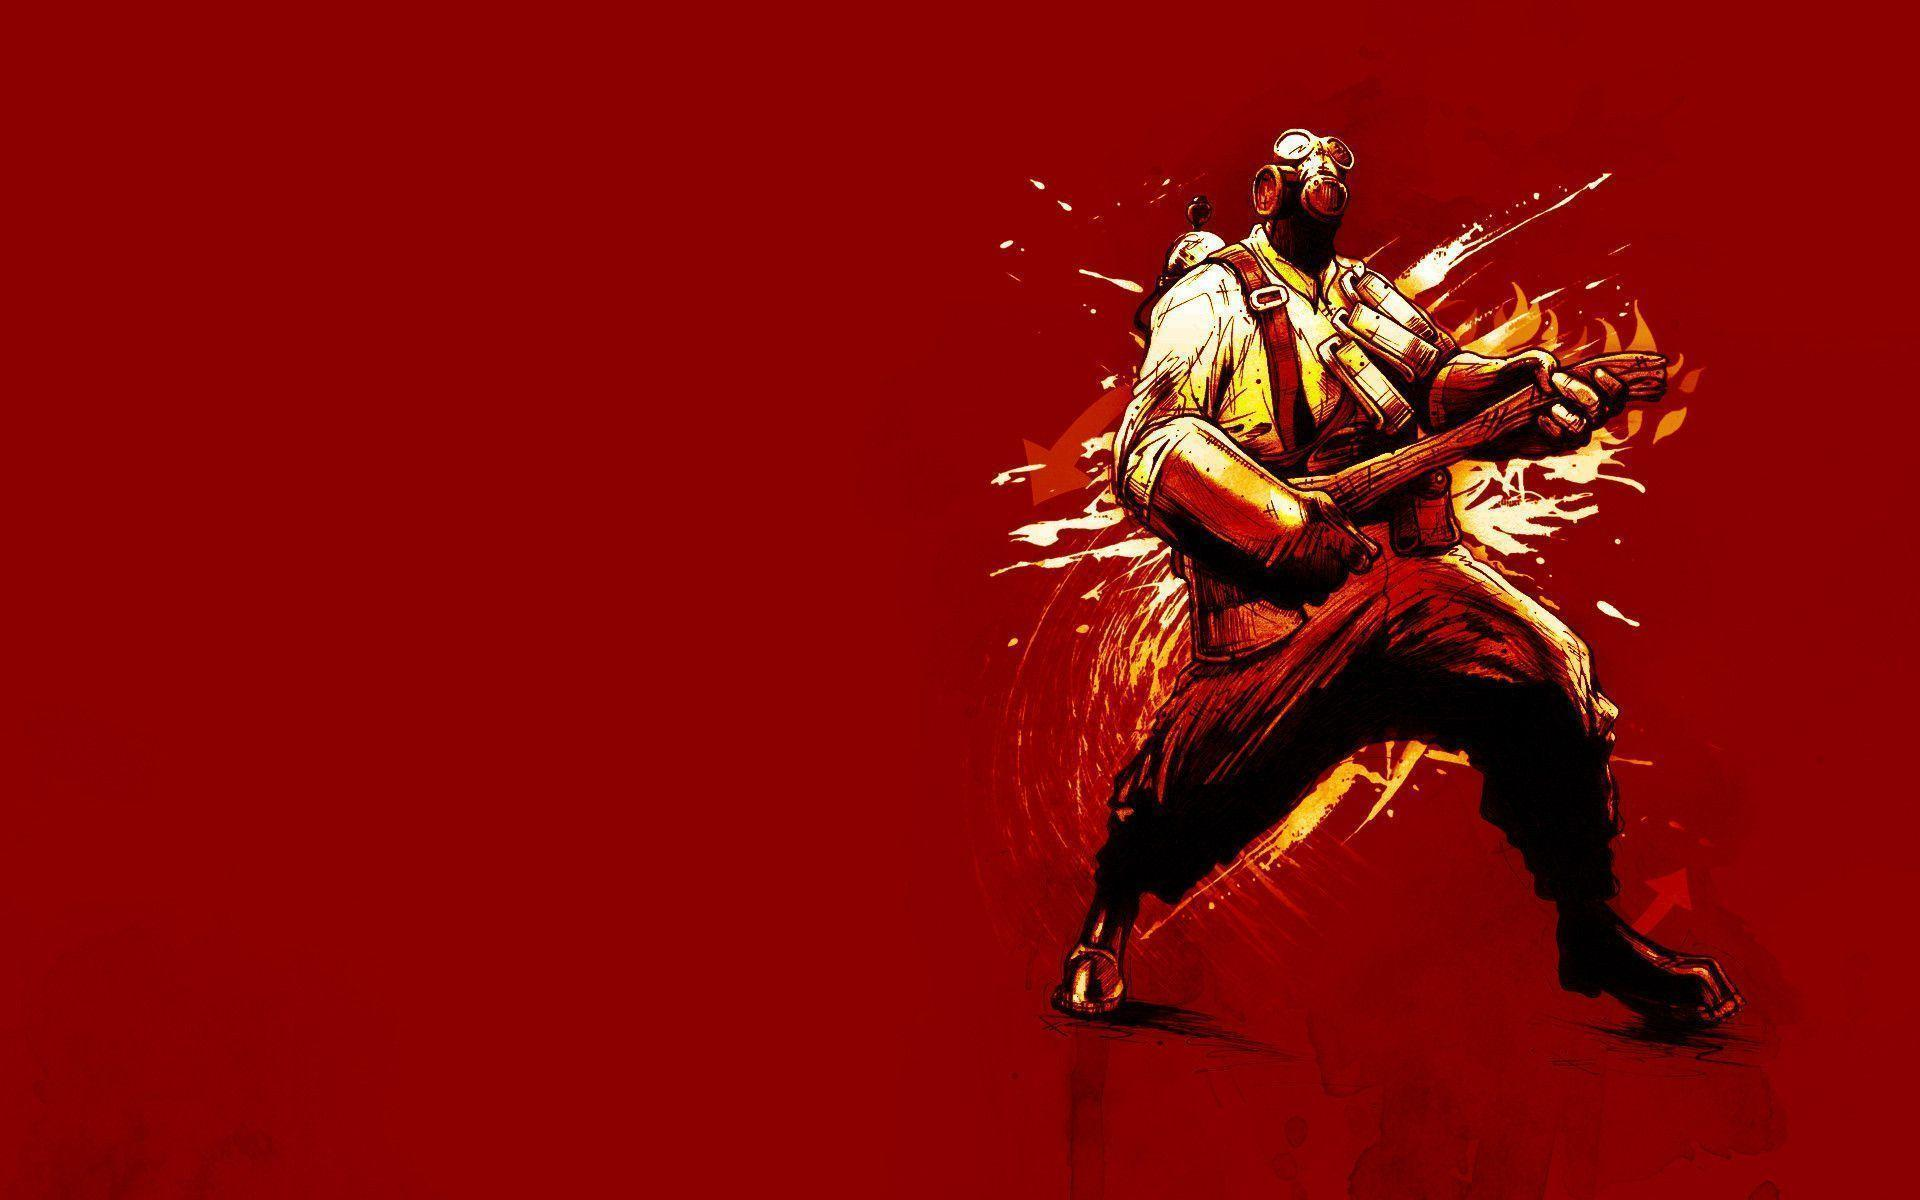 team fortress 2 wallpapers wallpaper cave